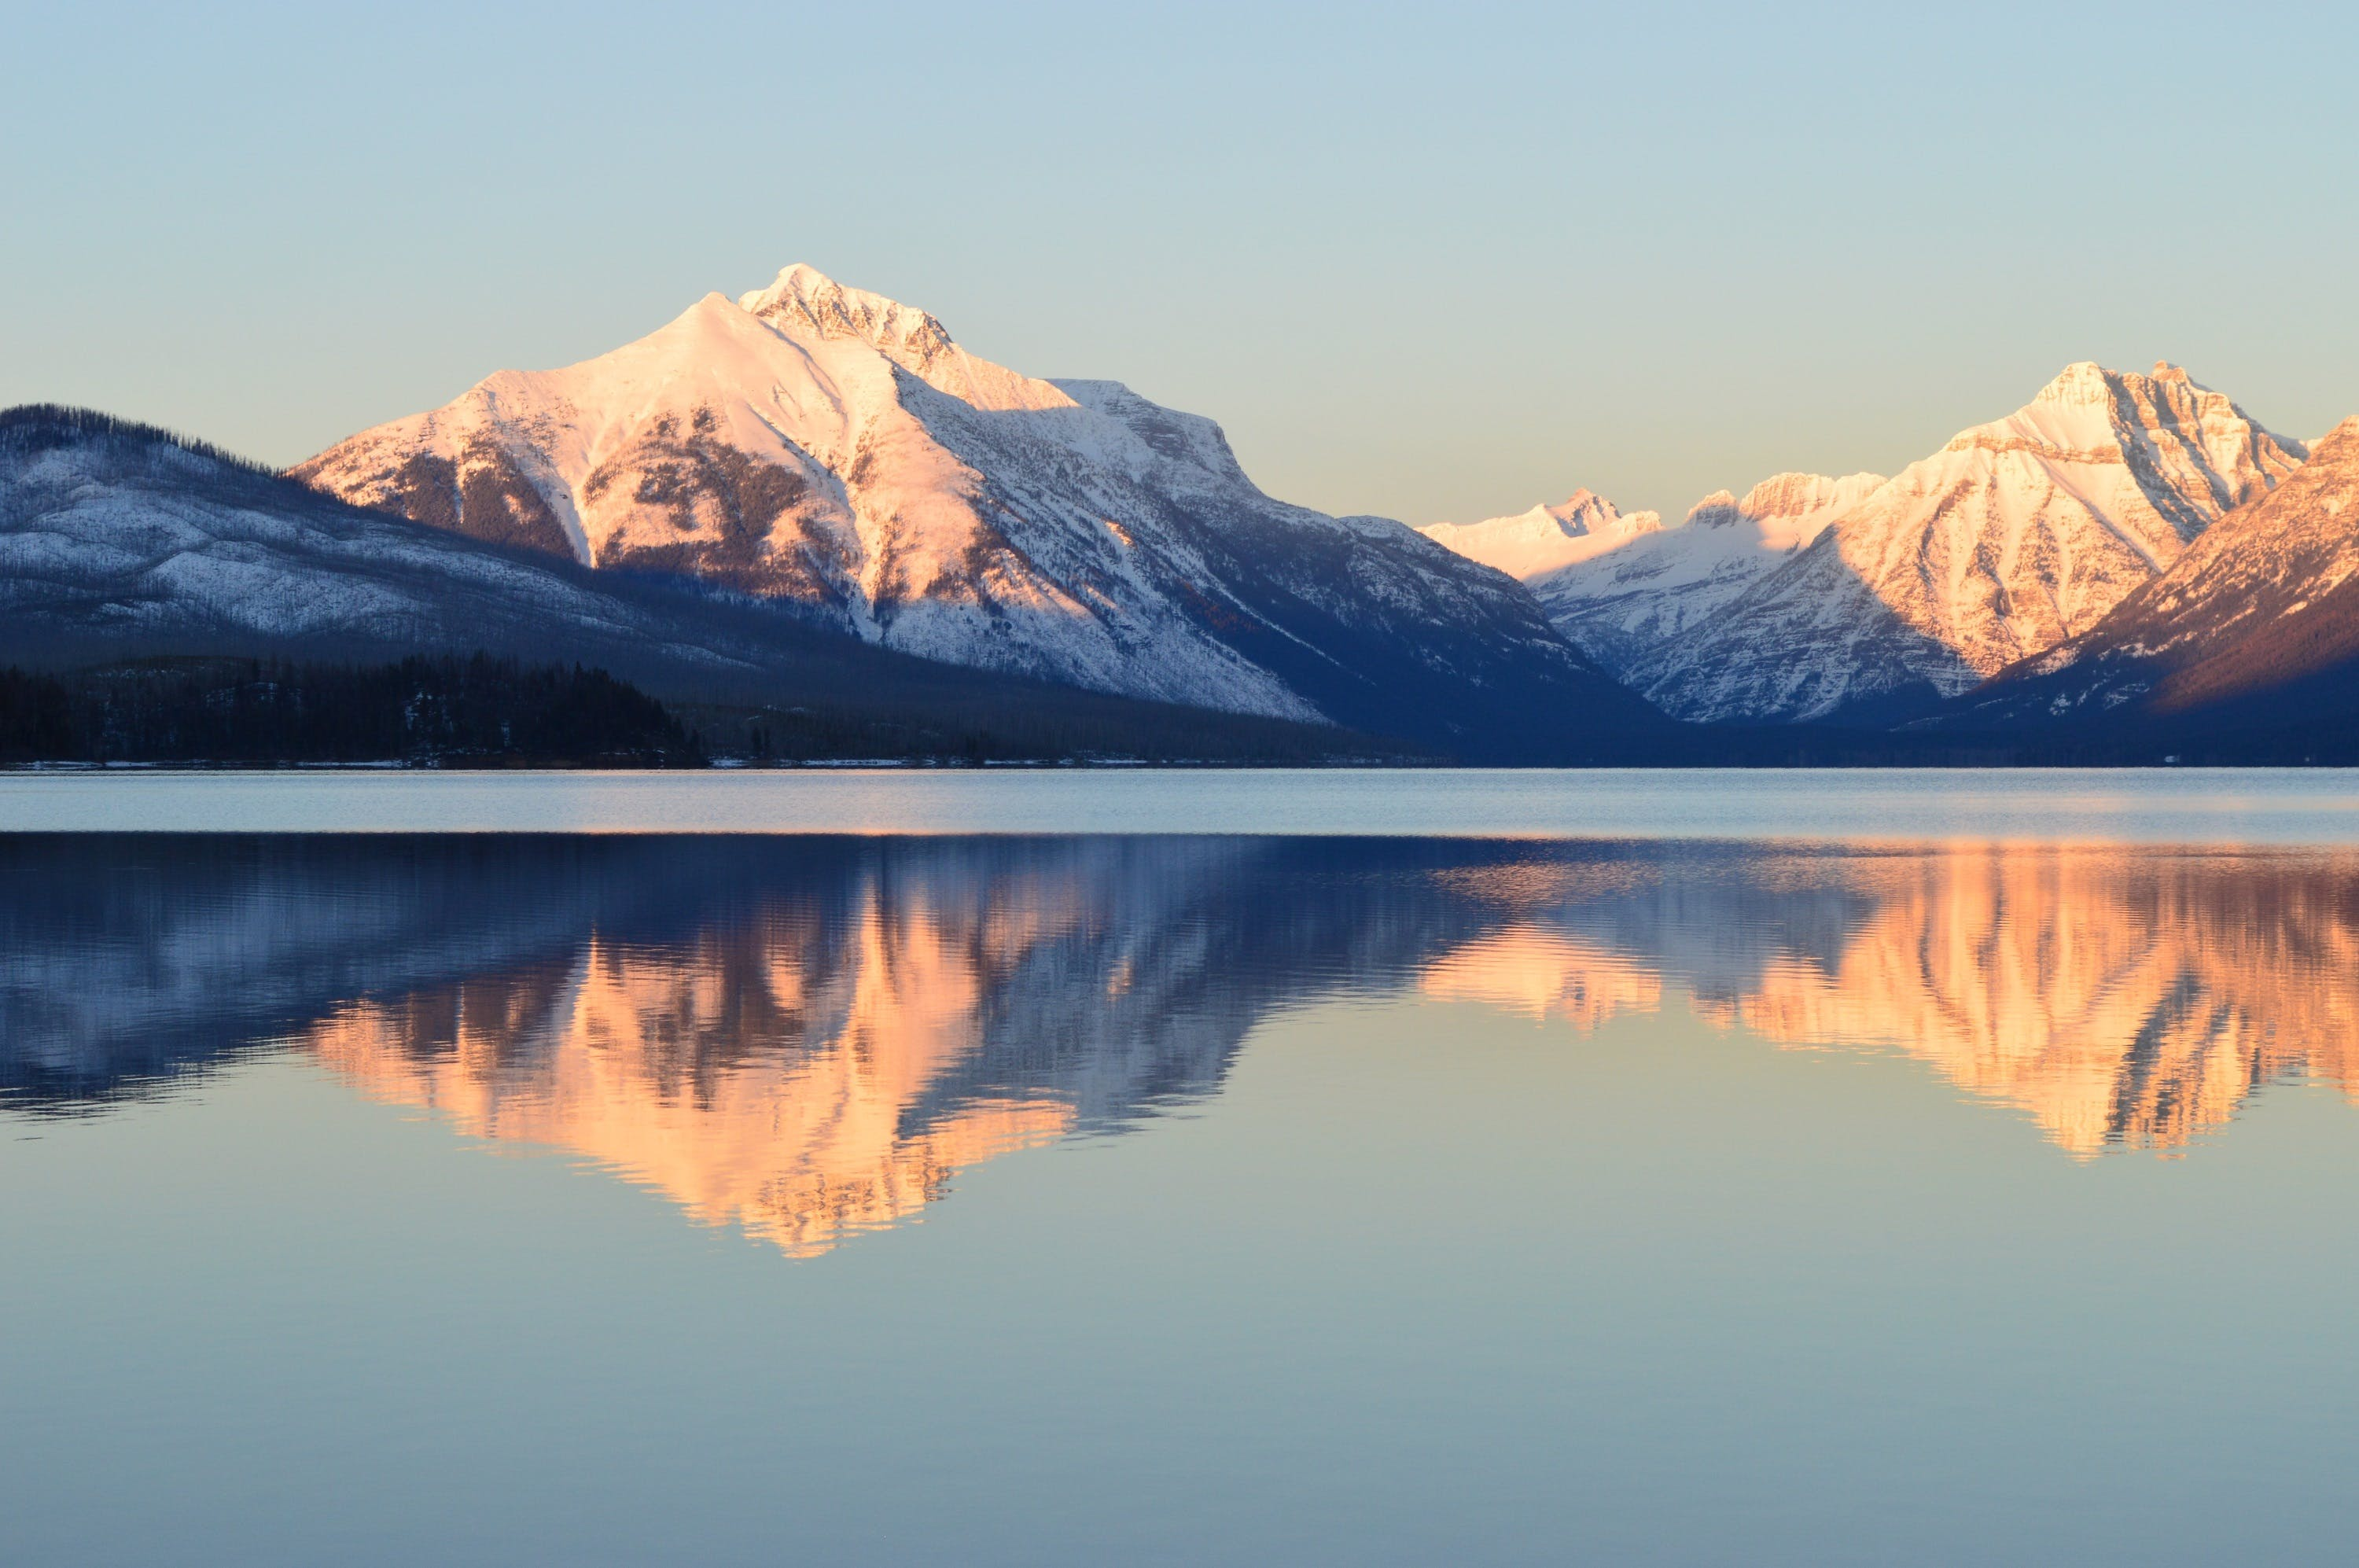 Reflective Photography of Alps Mountain